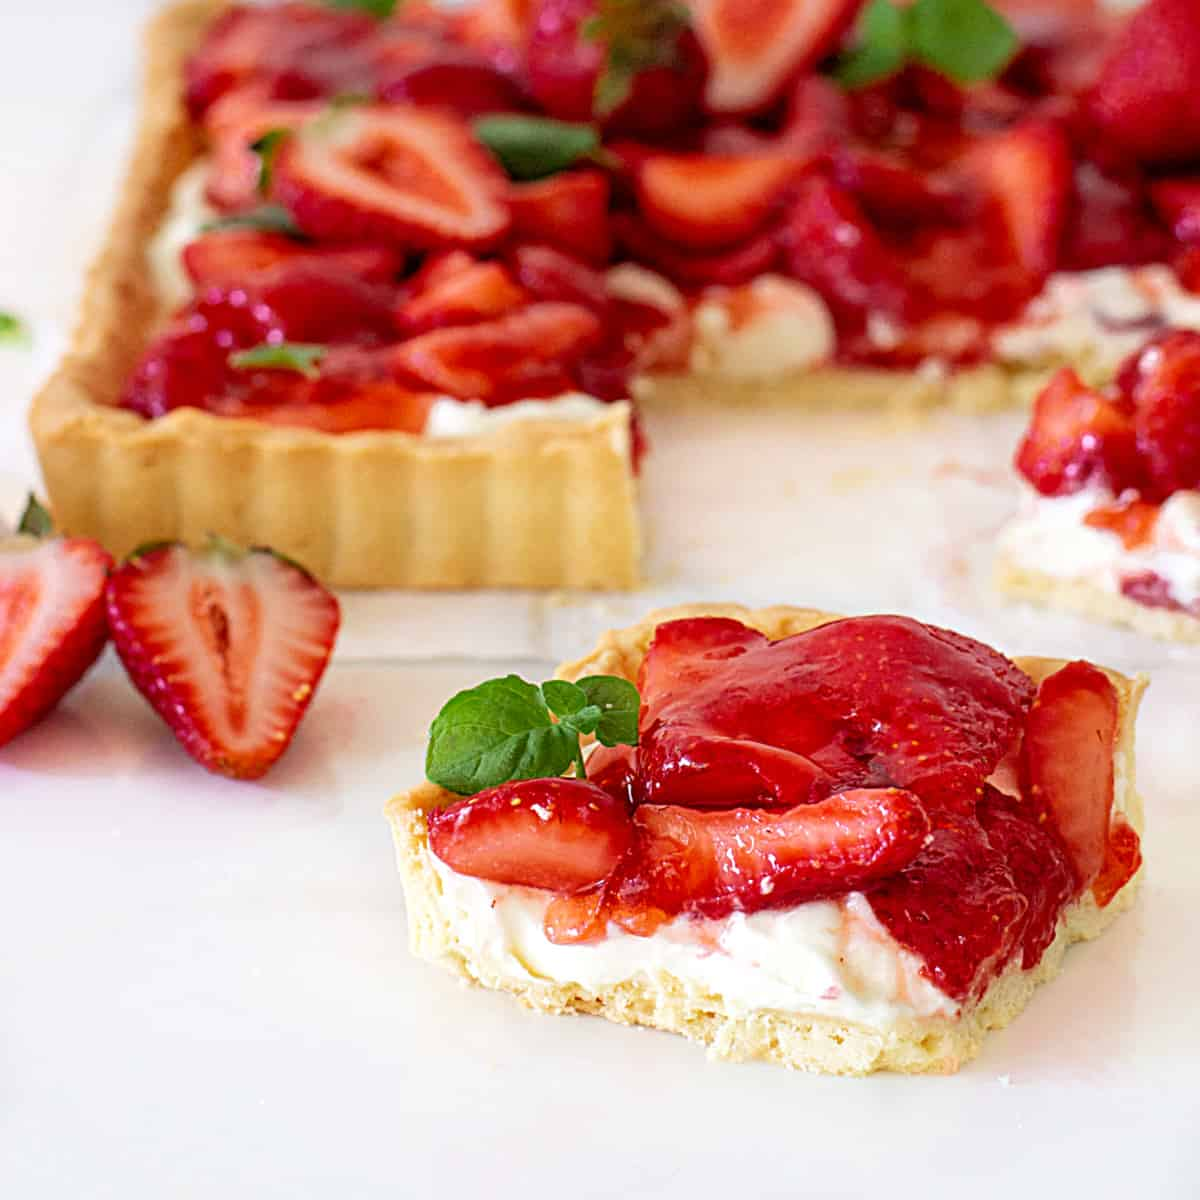 Slice of strawberry tart on white surface, rest of pie in background